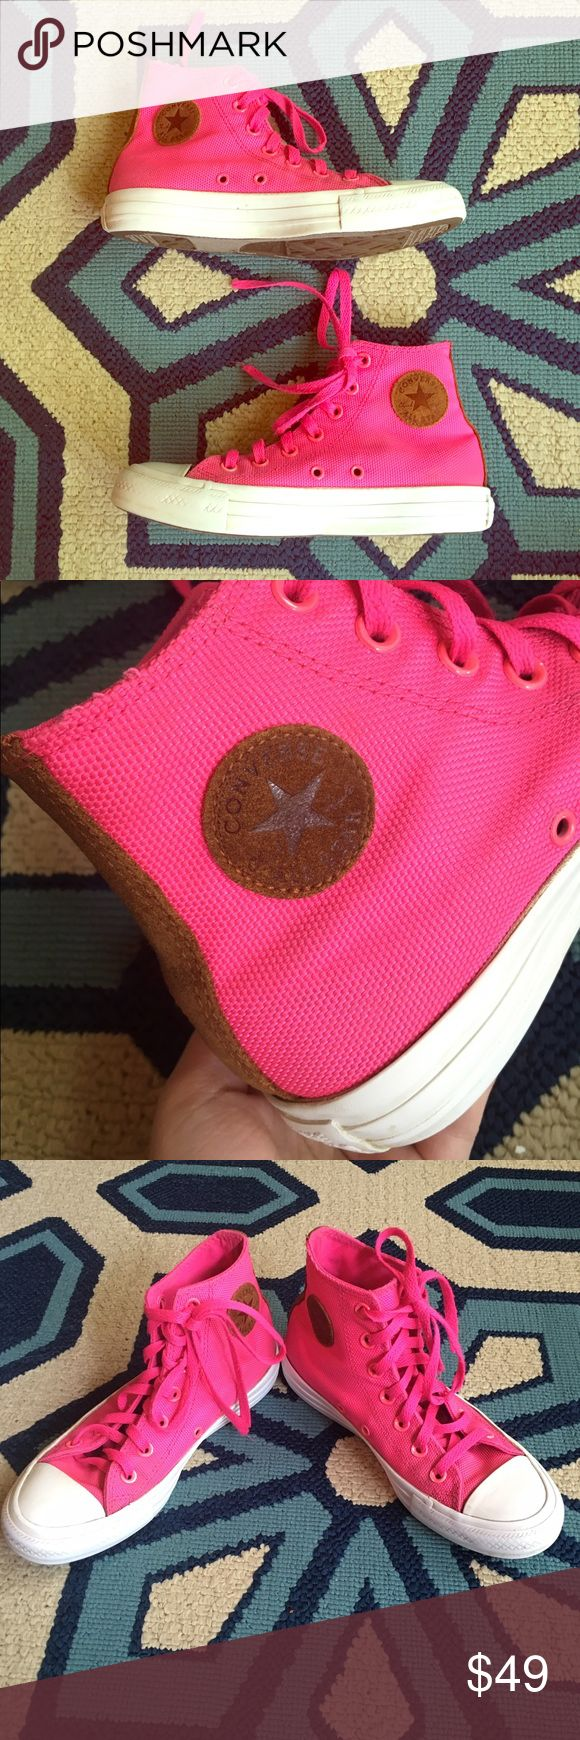 HOT PINK CONVERSE 🎀 Hot hot pink canvas Converse high tops. Hard to find! Brown suede canvas logo & back strip. In Great used condition. 😍🎀💕🎉 men's size 4, women's size 6. Converse Shoes Sneakers